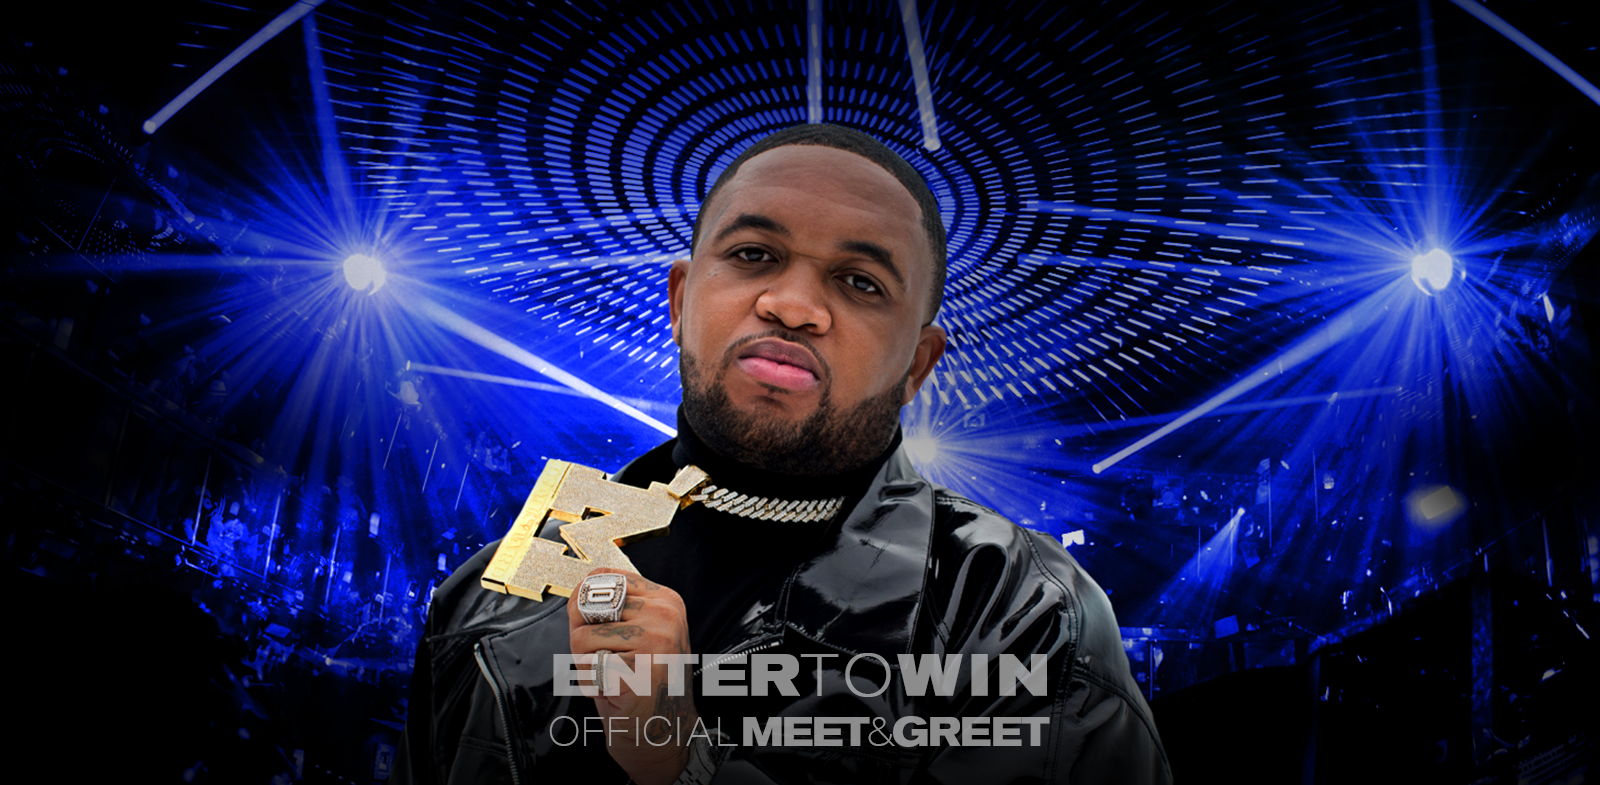 Mustard Meet & Greet + VIP Table Experience   Enter Now